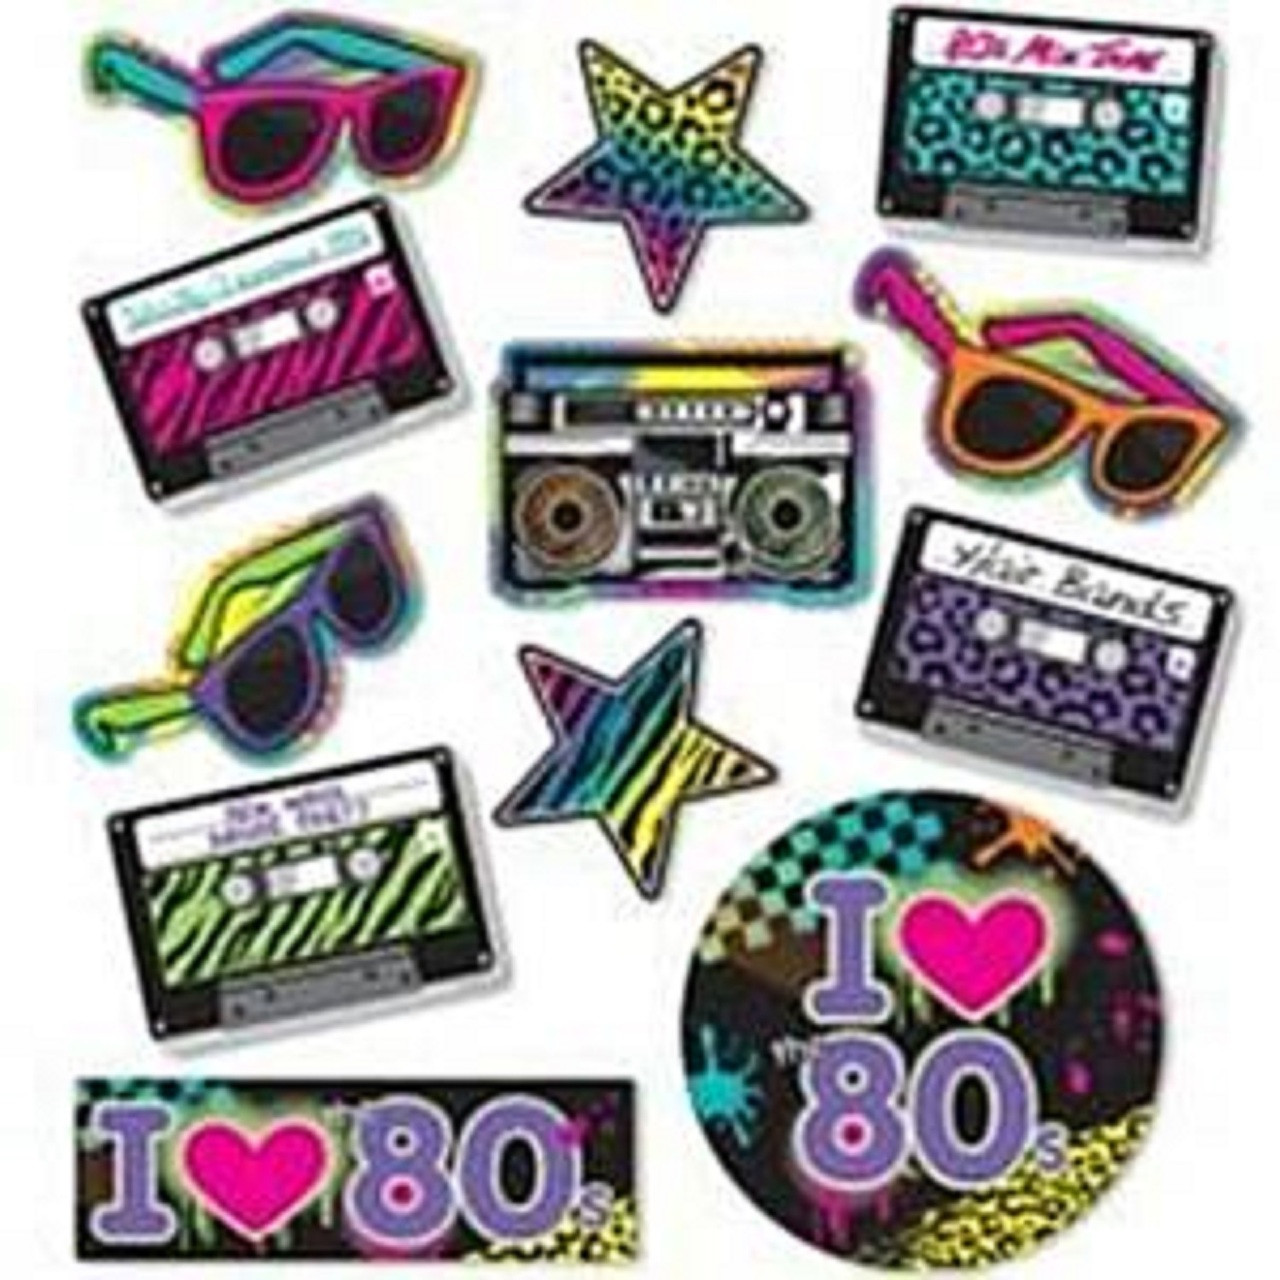 80 39 S Party Decorations Pack Of 30 Fancy Me Limited